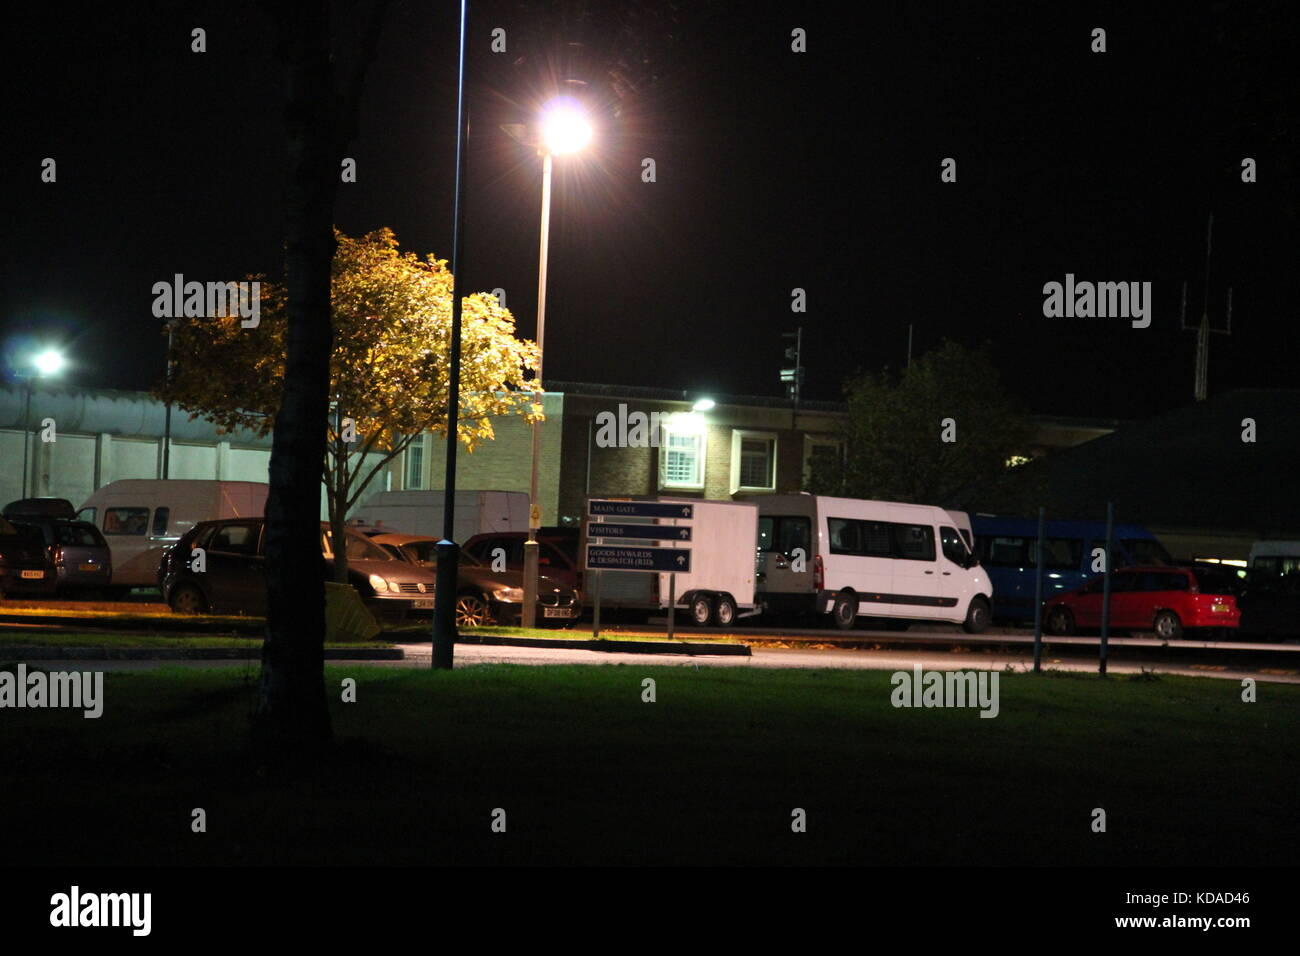 480d8b5b3f Several white security vans and trailers full of equipment belonging to the  specially-trained prison